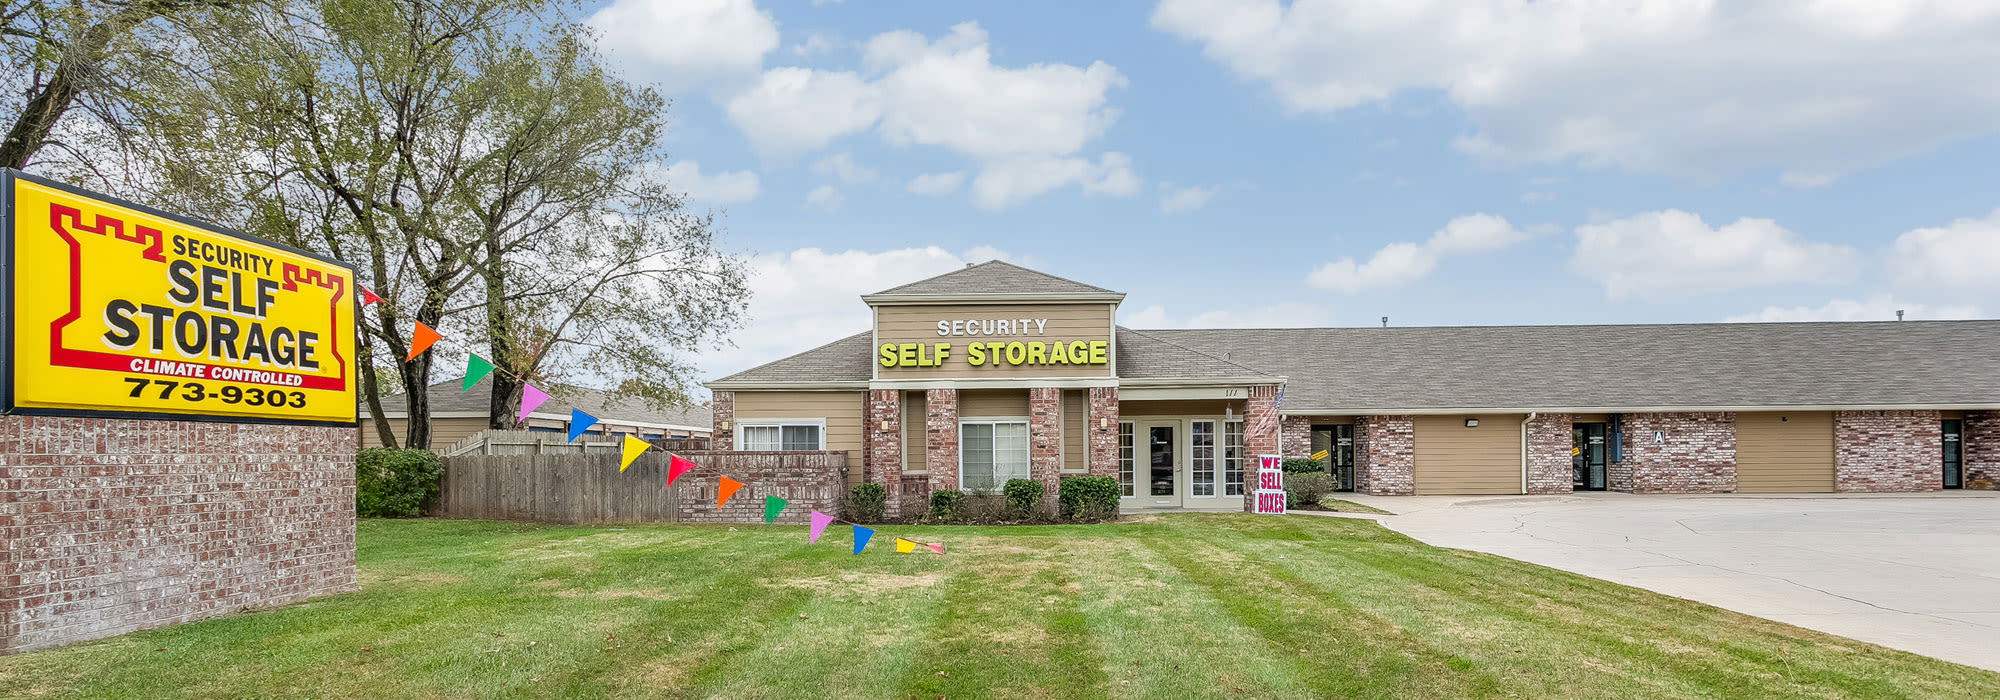 Self storage in Wichita KS